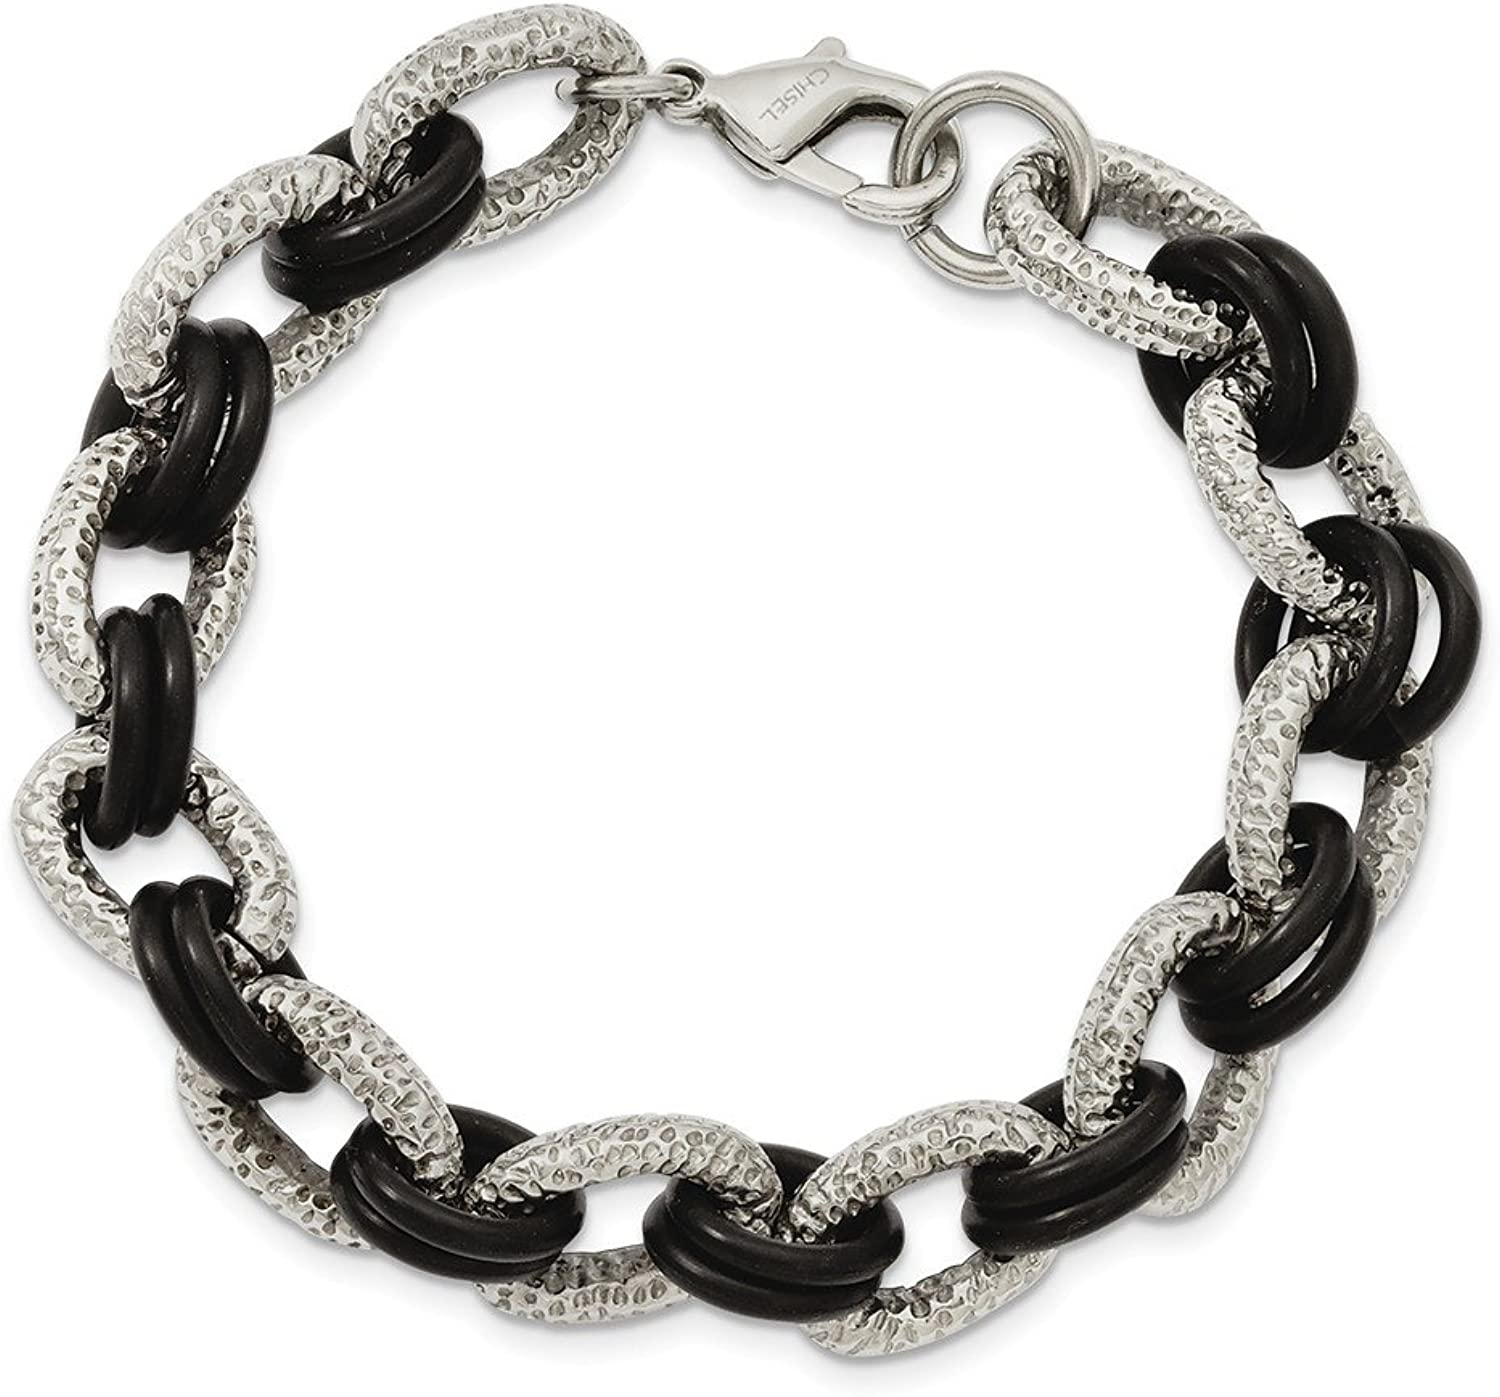 Beautiful Stainless Steel Textured & Black Rubber 9in Bracelet